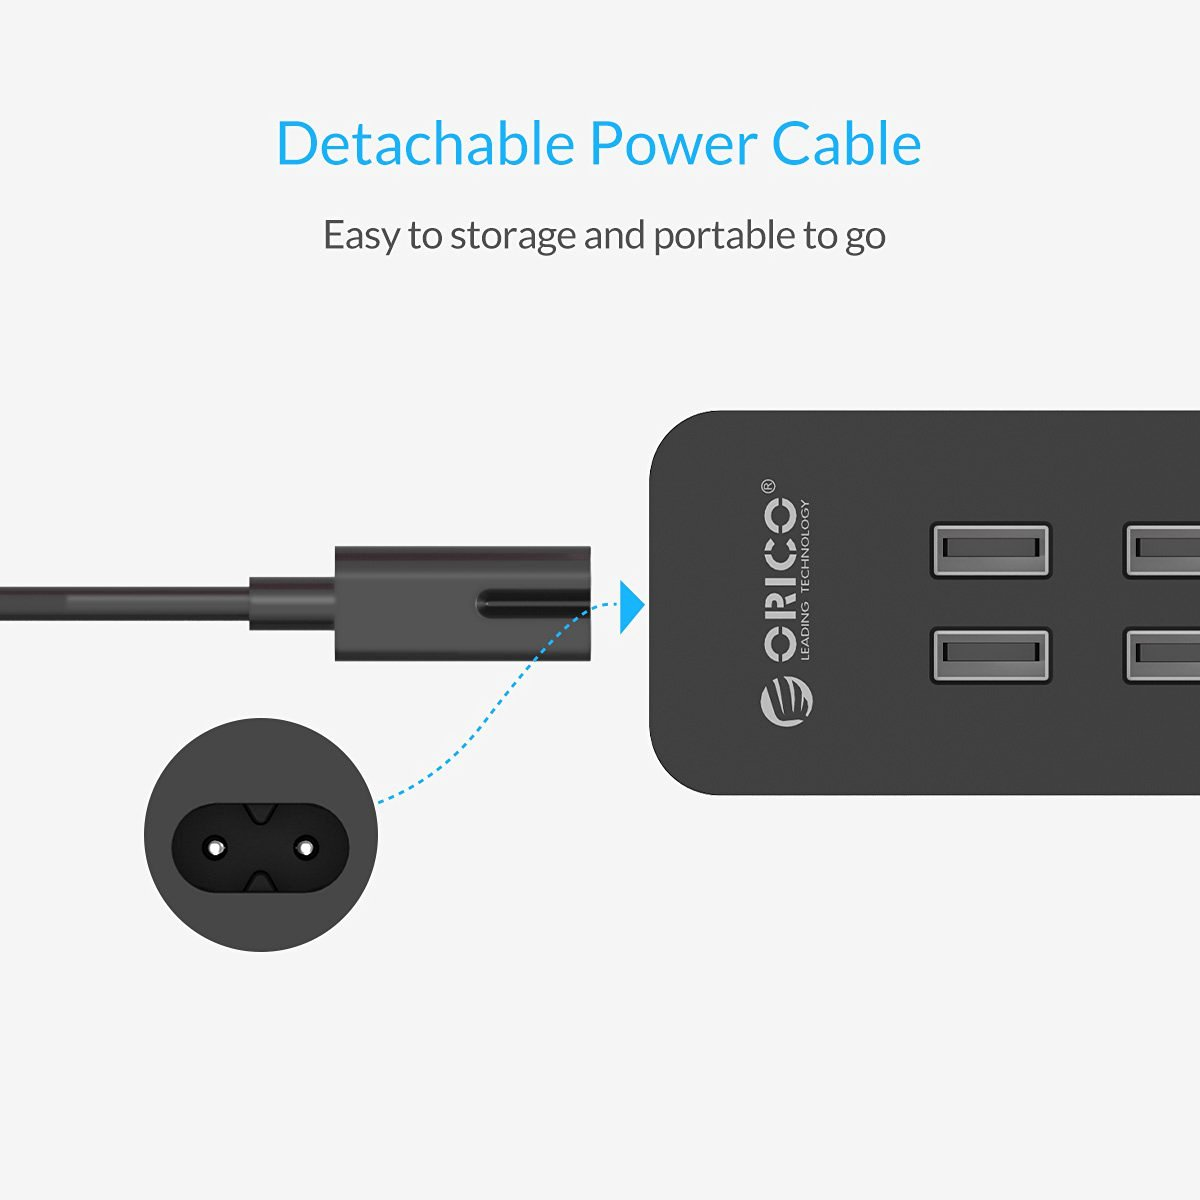 wholesale 4 Port USB Charger 5V2.4A Max 20W Mini Desktop Charger for iPhone 7 7 Plus iPad Air 2 Mini 3 Galaxy S6 7 and More